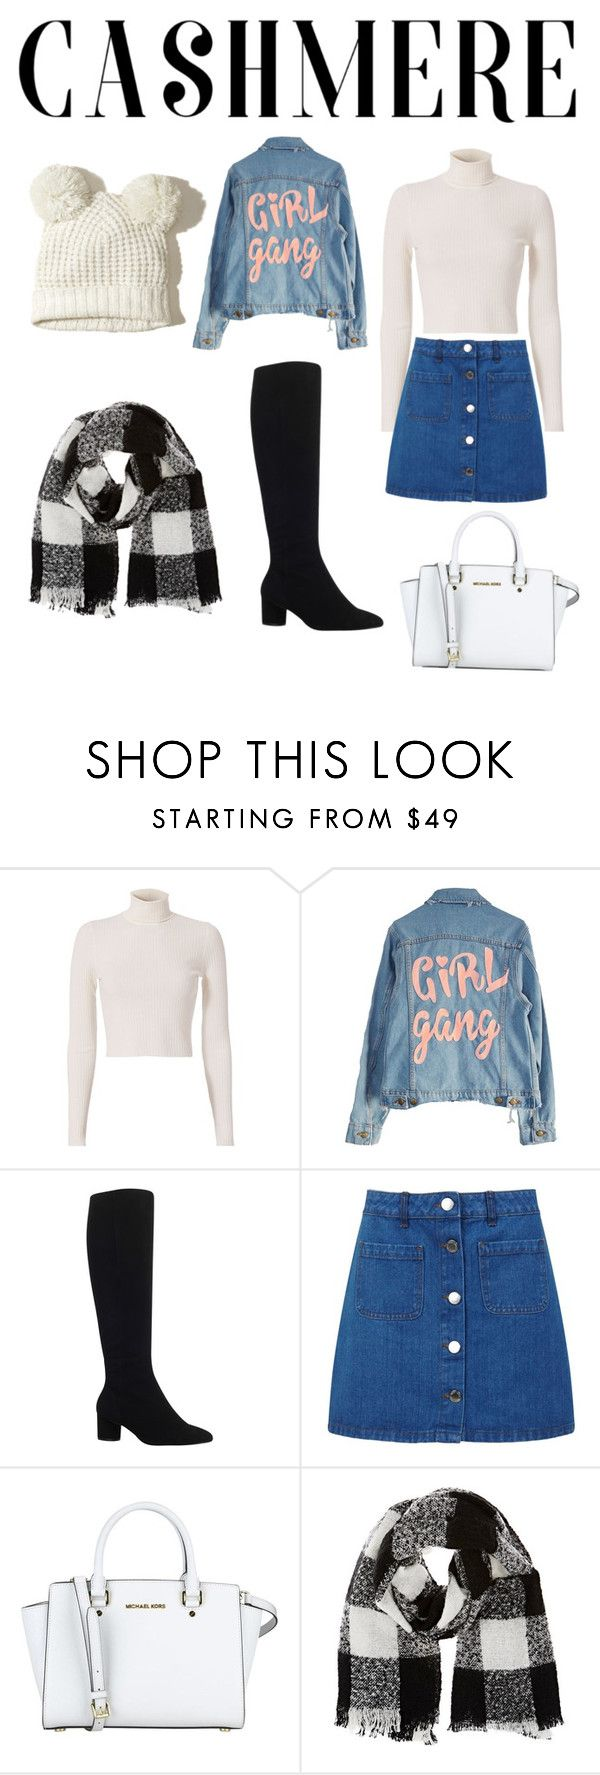 """Winter"" by jiaghag ❤ liked on Polyvore featuring A.L.C., High Heels Suicide, Kurt Geiger, Miss Selfridge, MICHAEL Michael Kors, Barneys New York and Hollister Co."